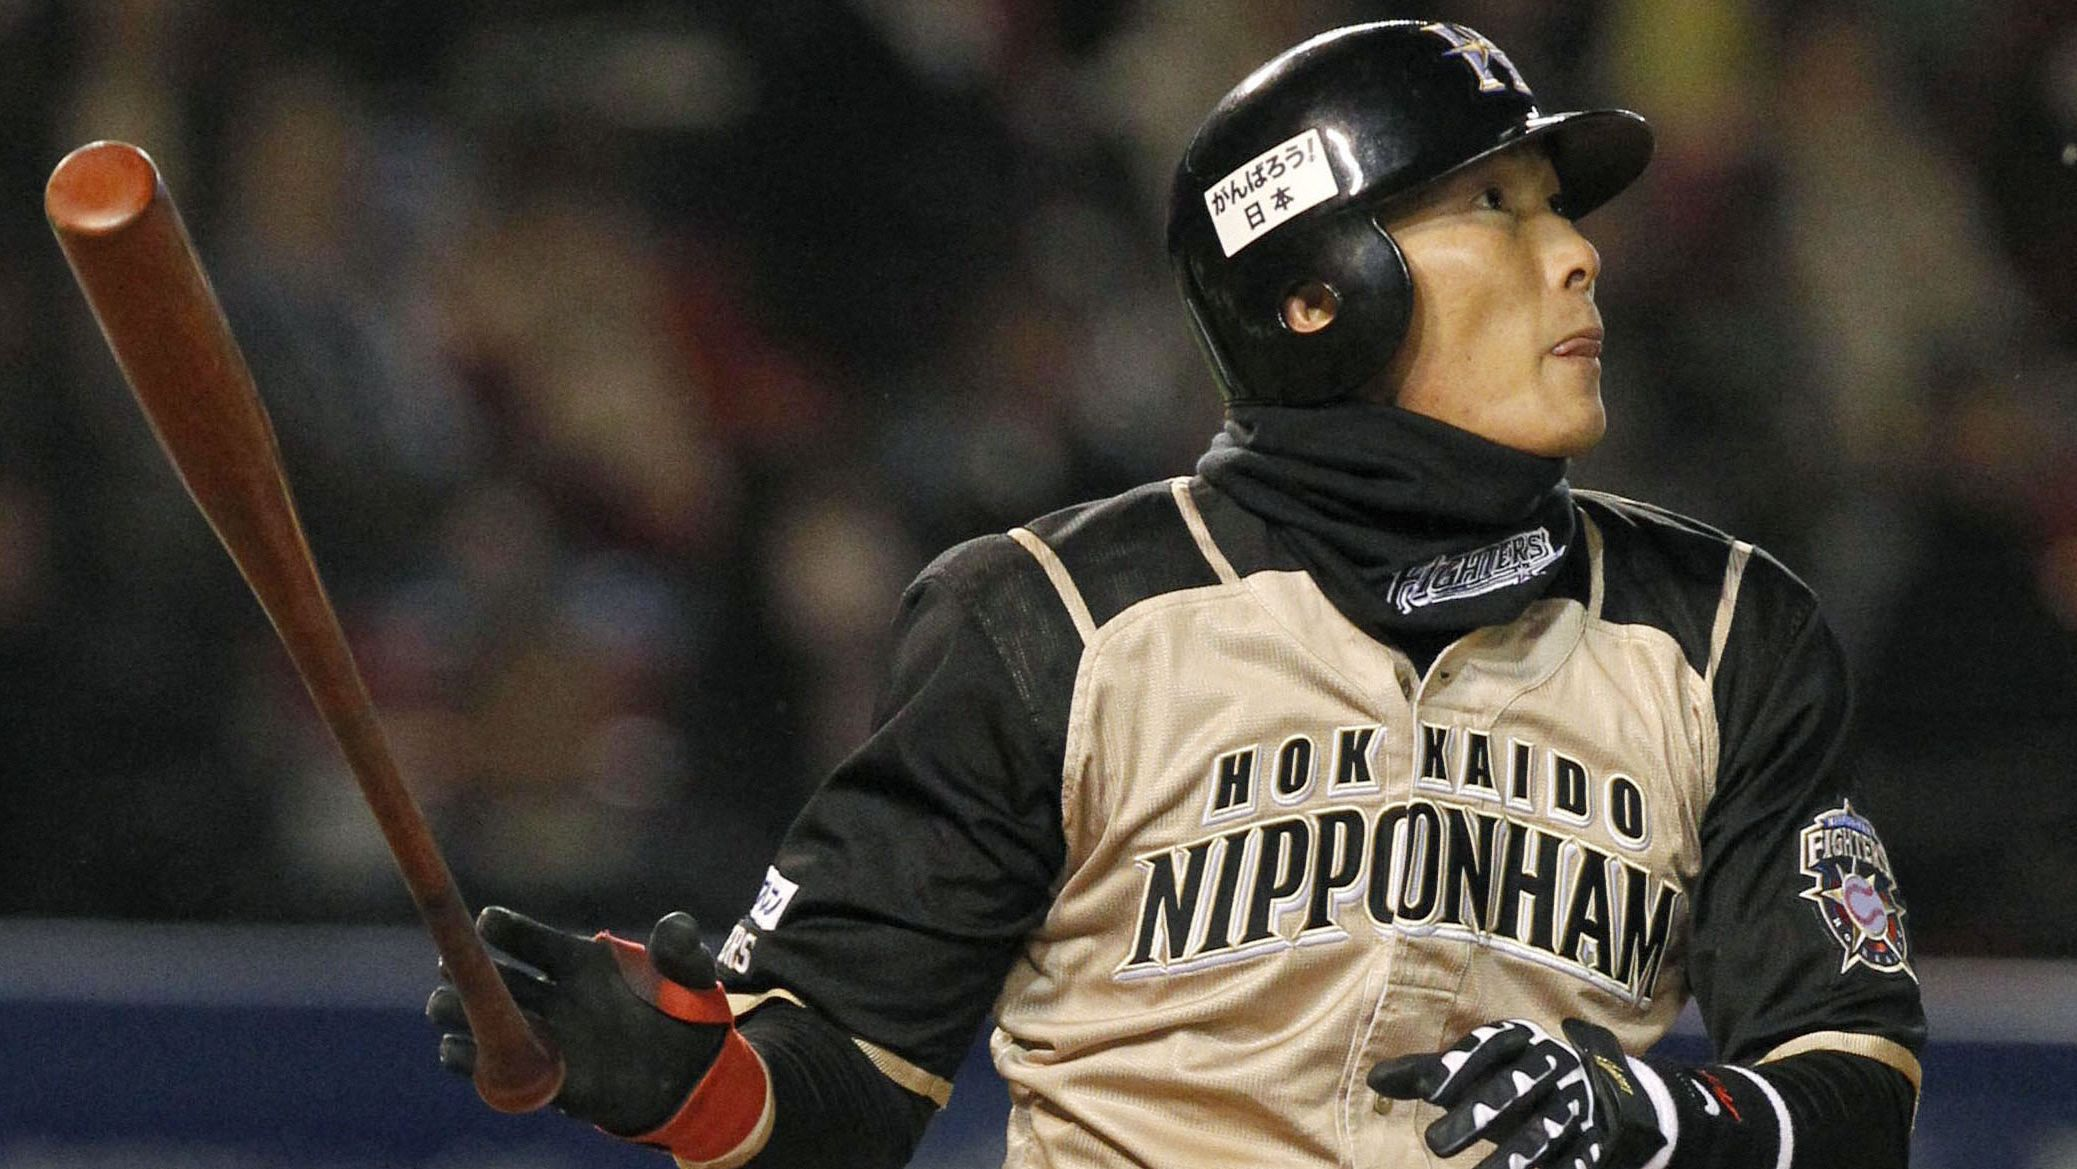 Caught by surprise: The Hokkaido Nippon Ham Fighters made a curious move by trading away four-time All-Star Yoshio Itoi as part of a five-player deal with the Orix Buffaloes. | KYODO